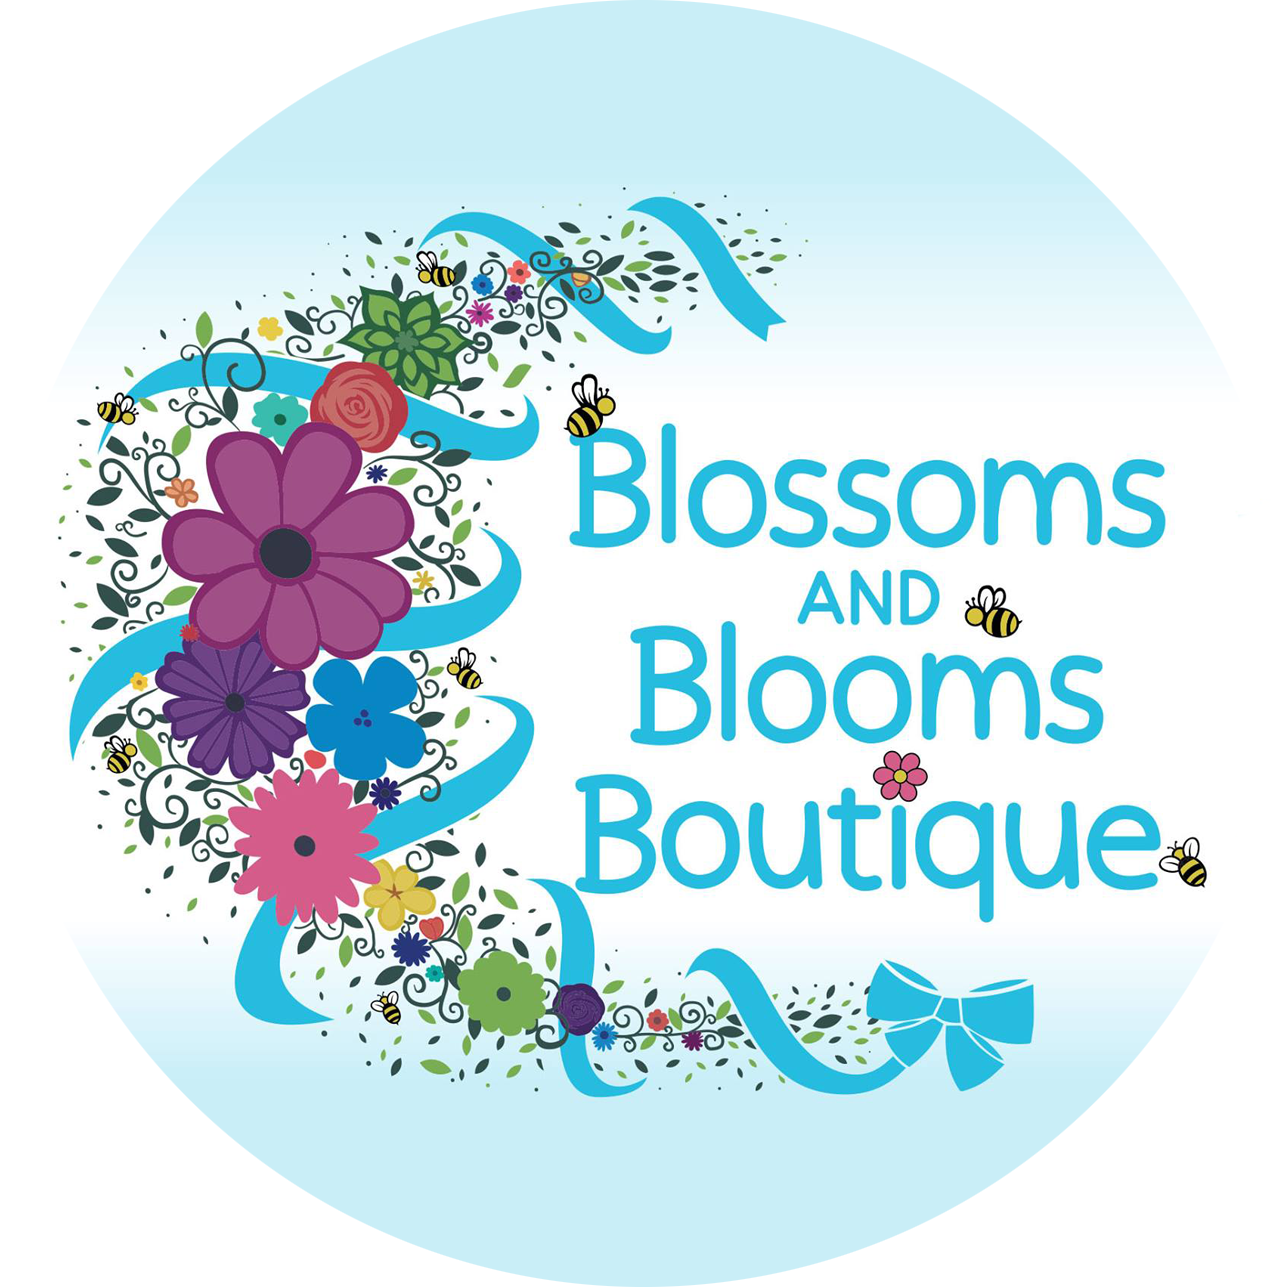 Blossoms and Blooms Boutique